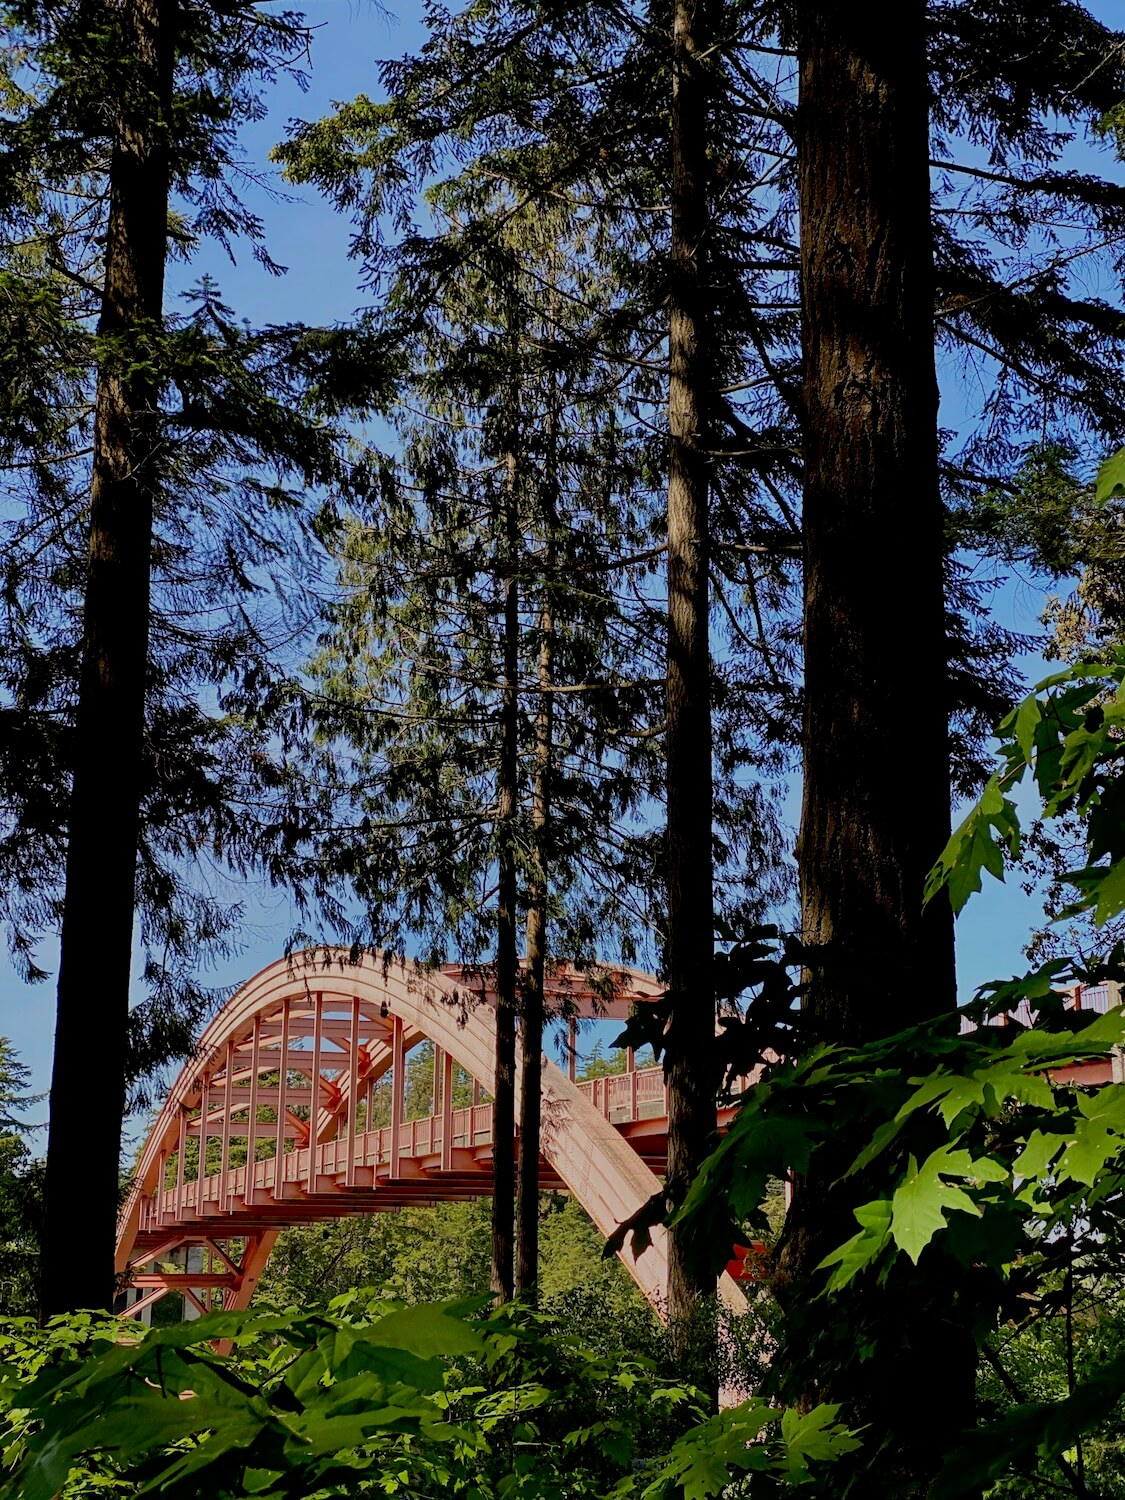 The Rainbow Bridge connects the Swinomish Tribal Community with La Conner, Washington.  In this shot, the prink bridge is hidden behind several tall fir trees and maple brush of Pioneer Park.